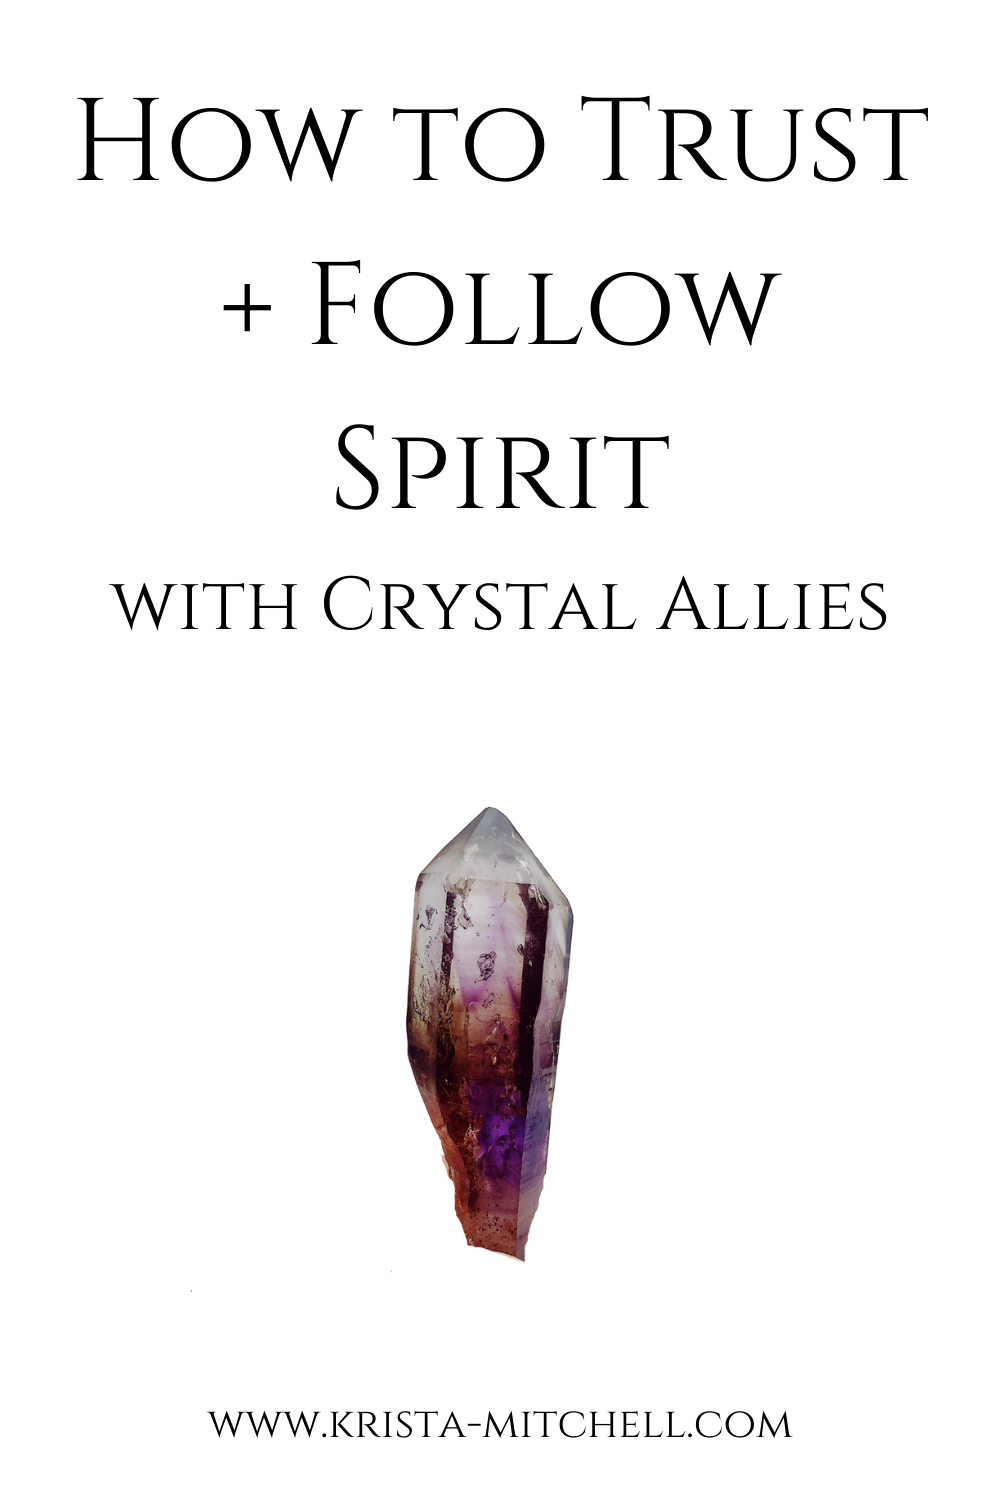 How to Trust + Follow Spirit with Crystal Allies / www.krista-mitchell.com